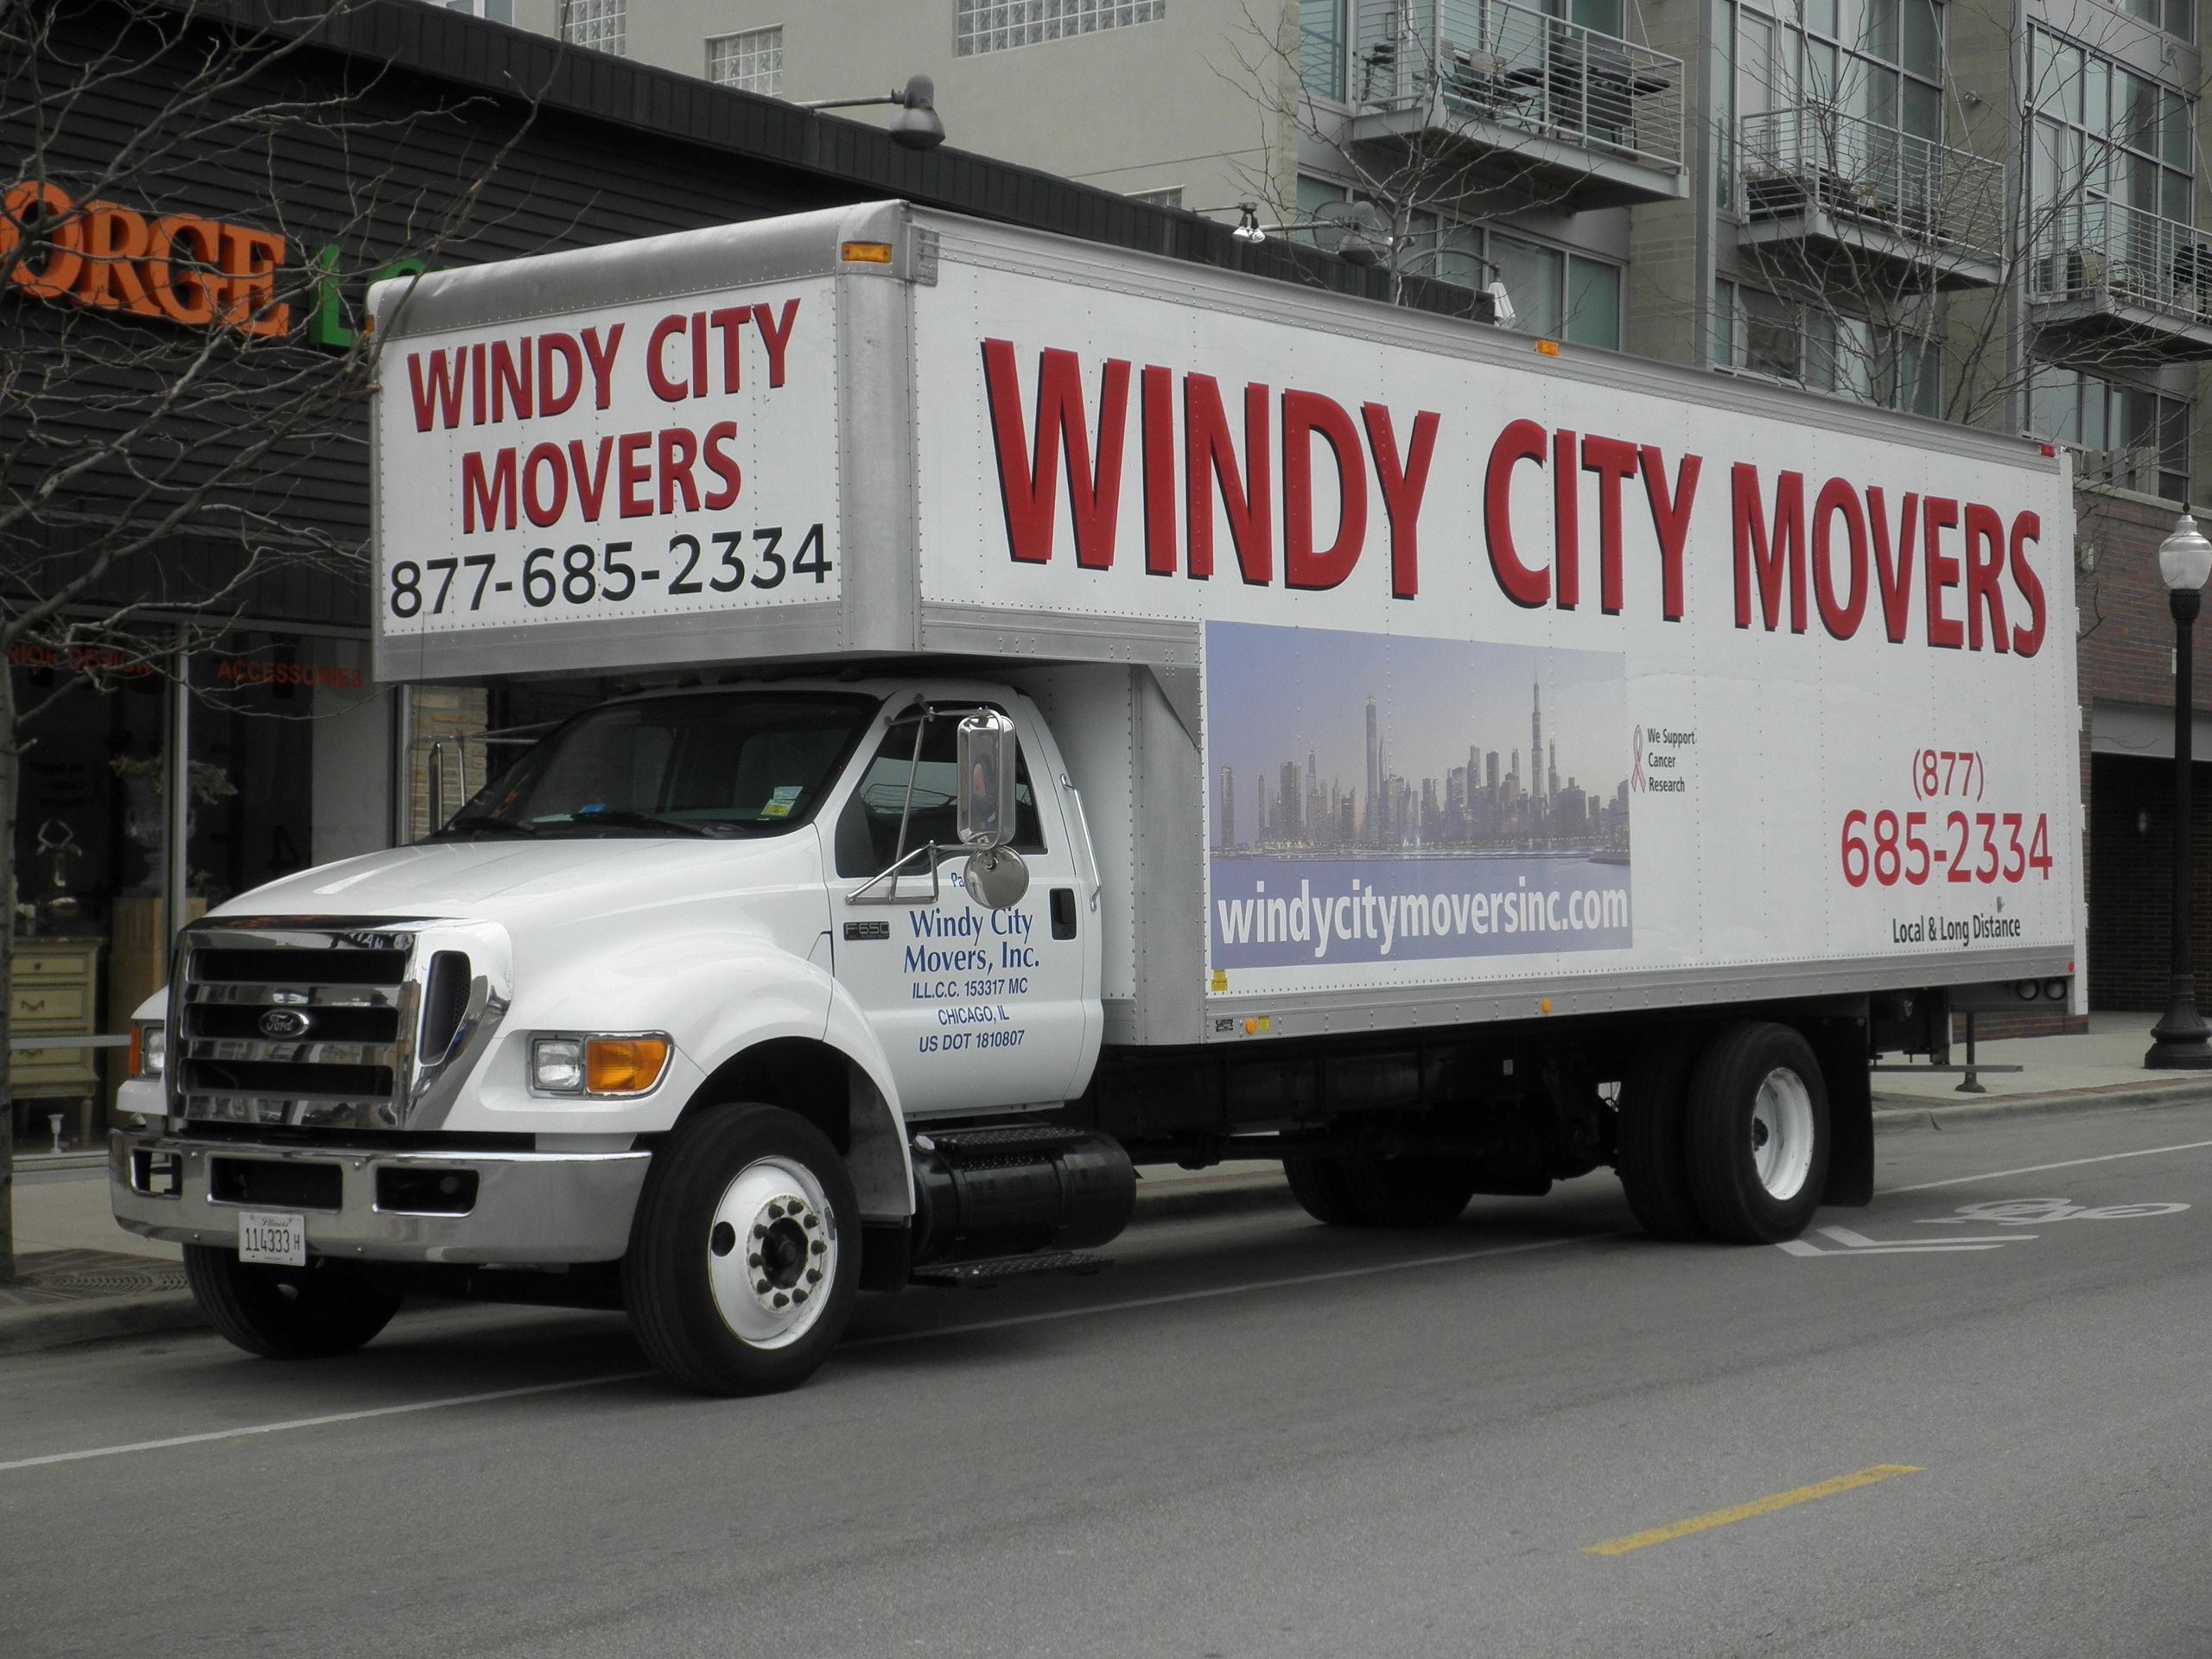 Windy City Movers - Local Chicago Moving Company